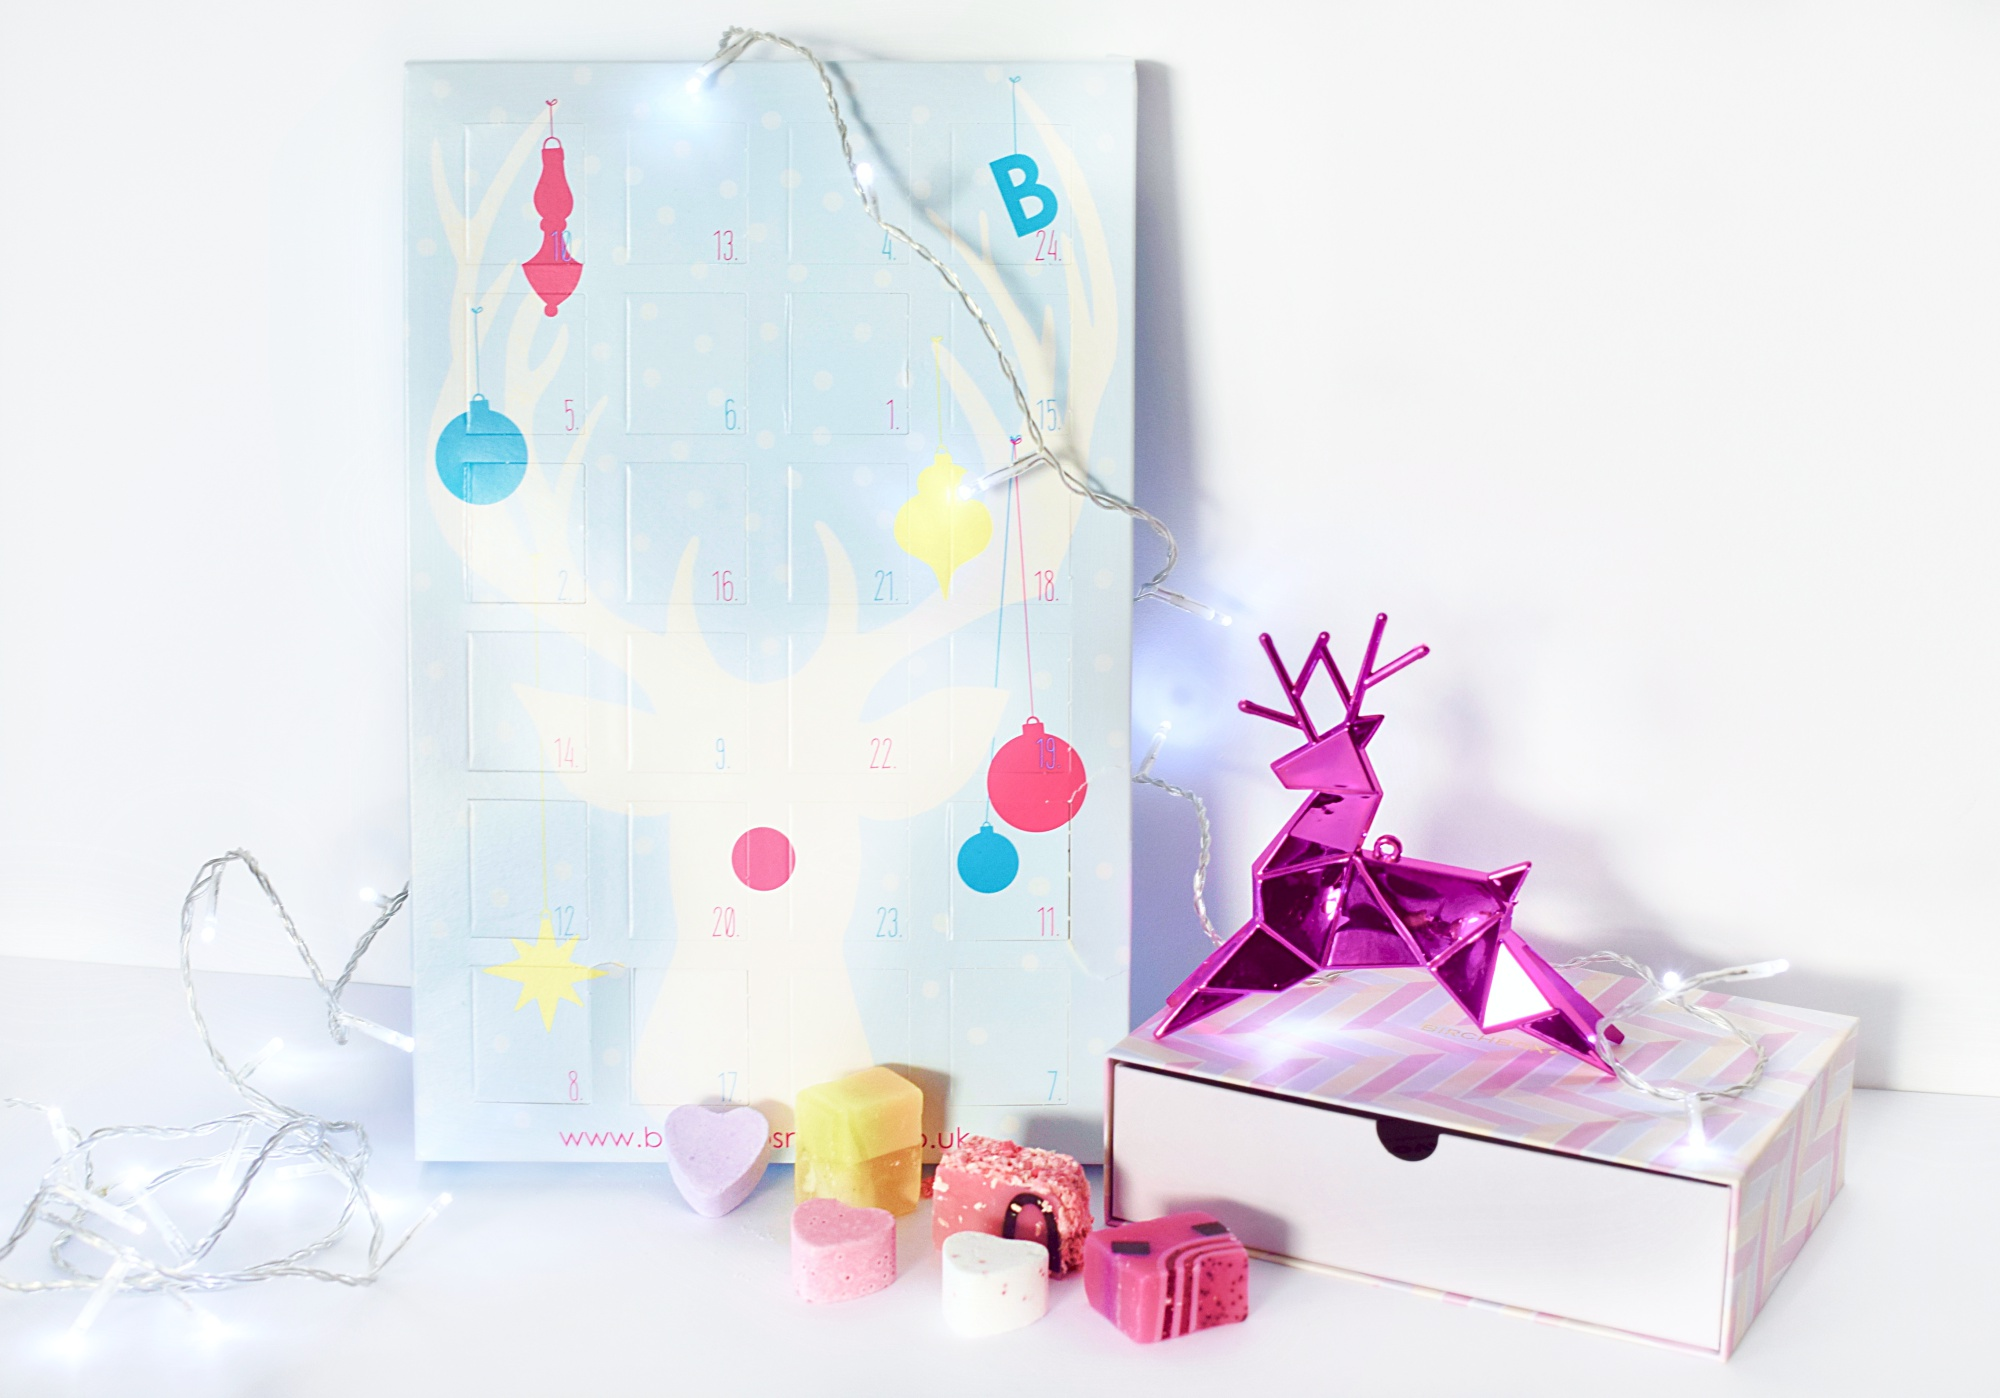 Bomb Cosmetics Advent Calendar Giveaway